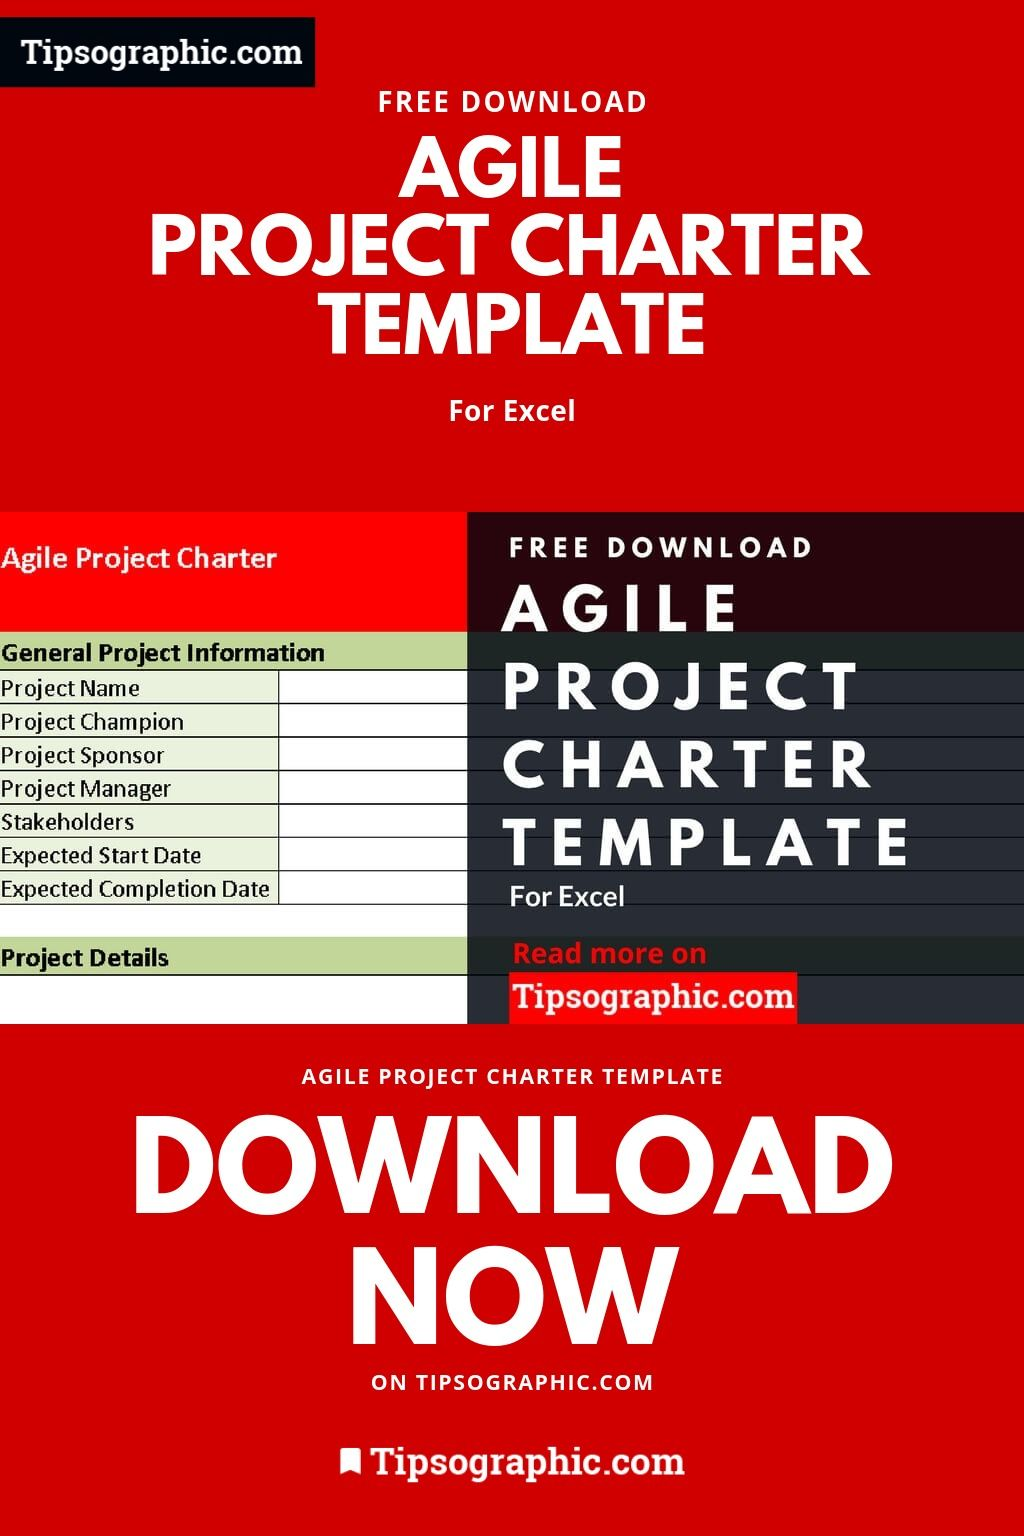 Agile Project Charter Template For Excel Free Download With